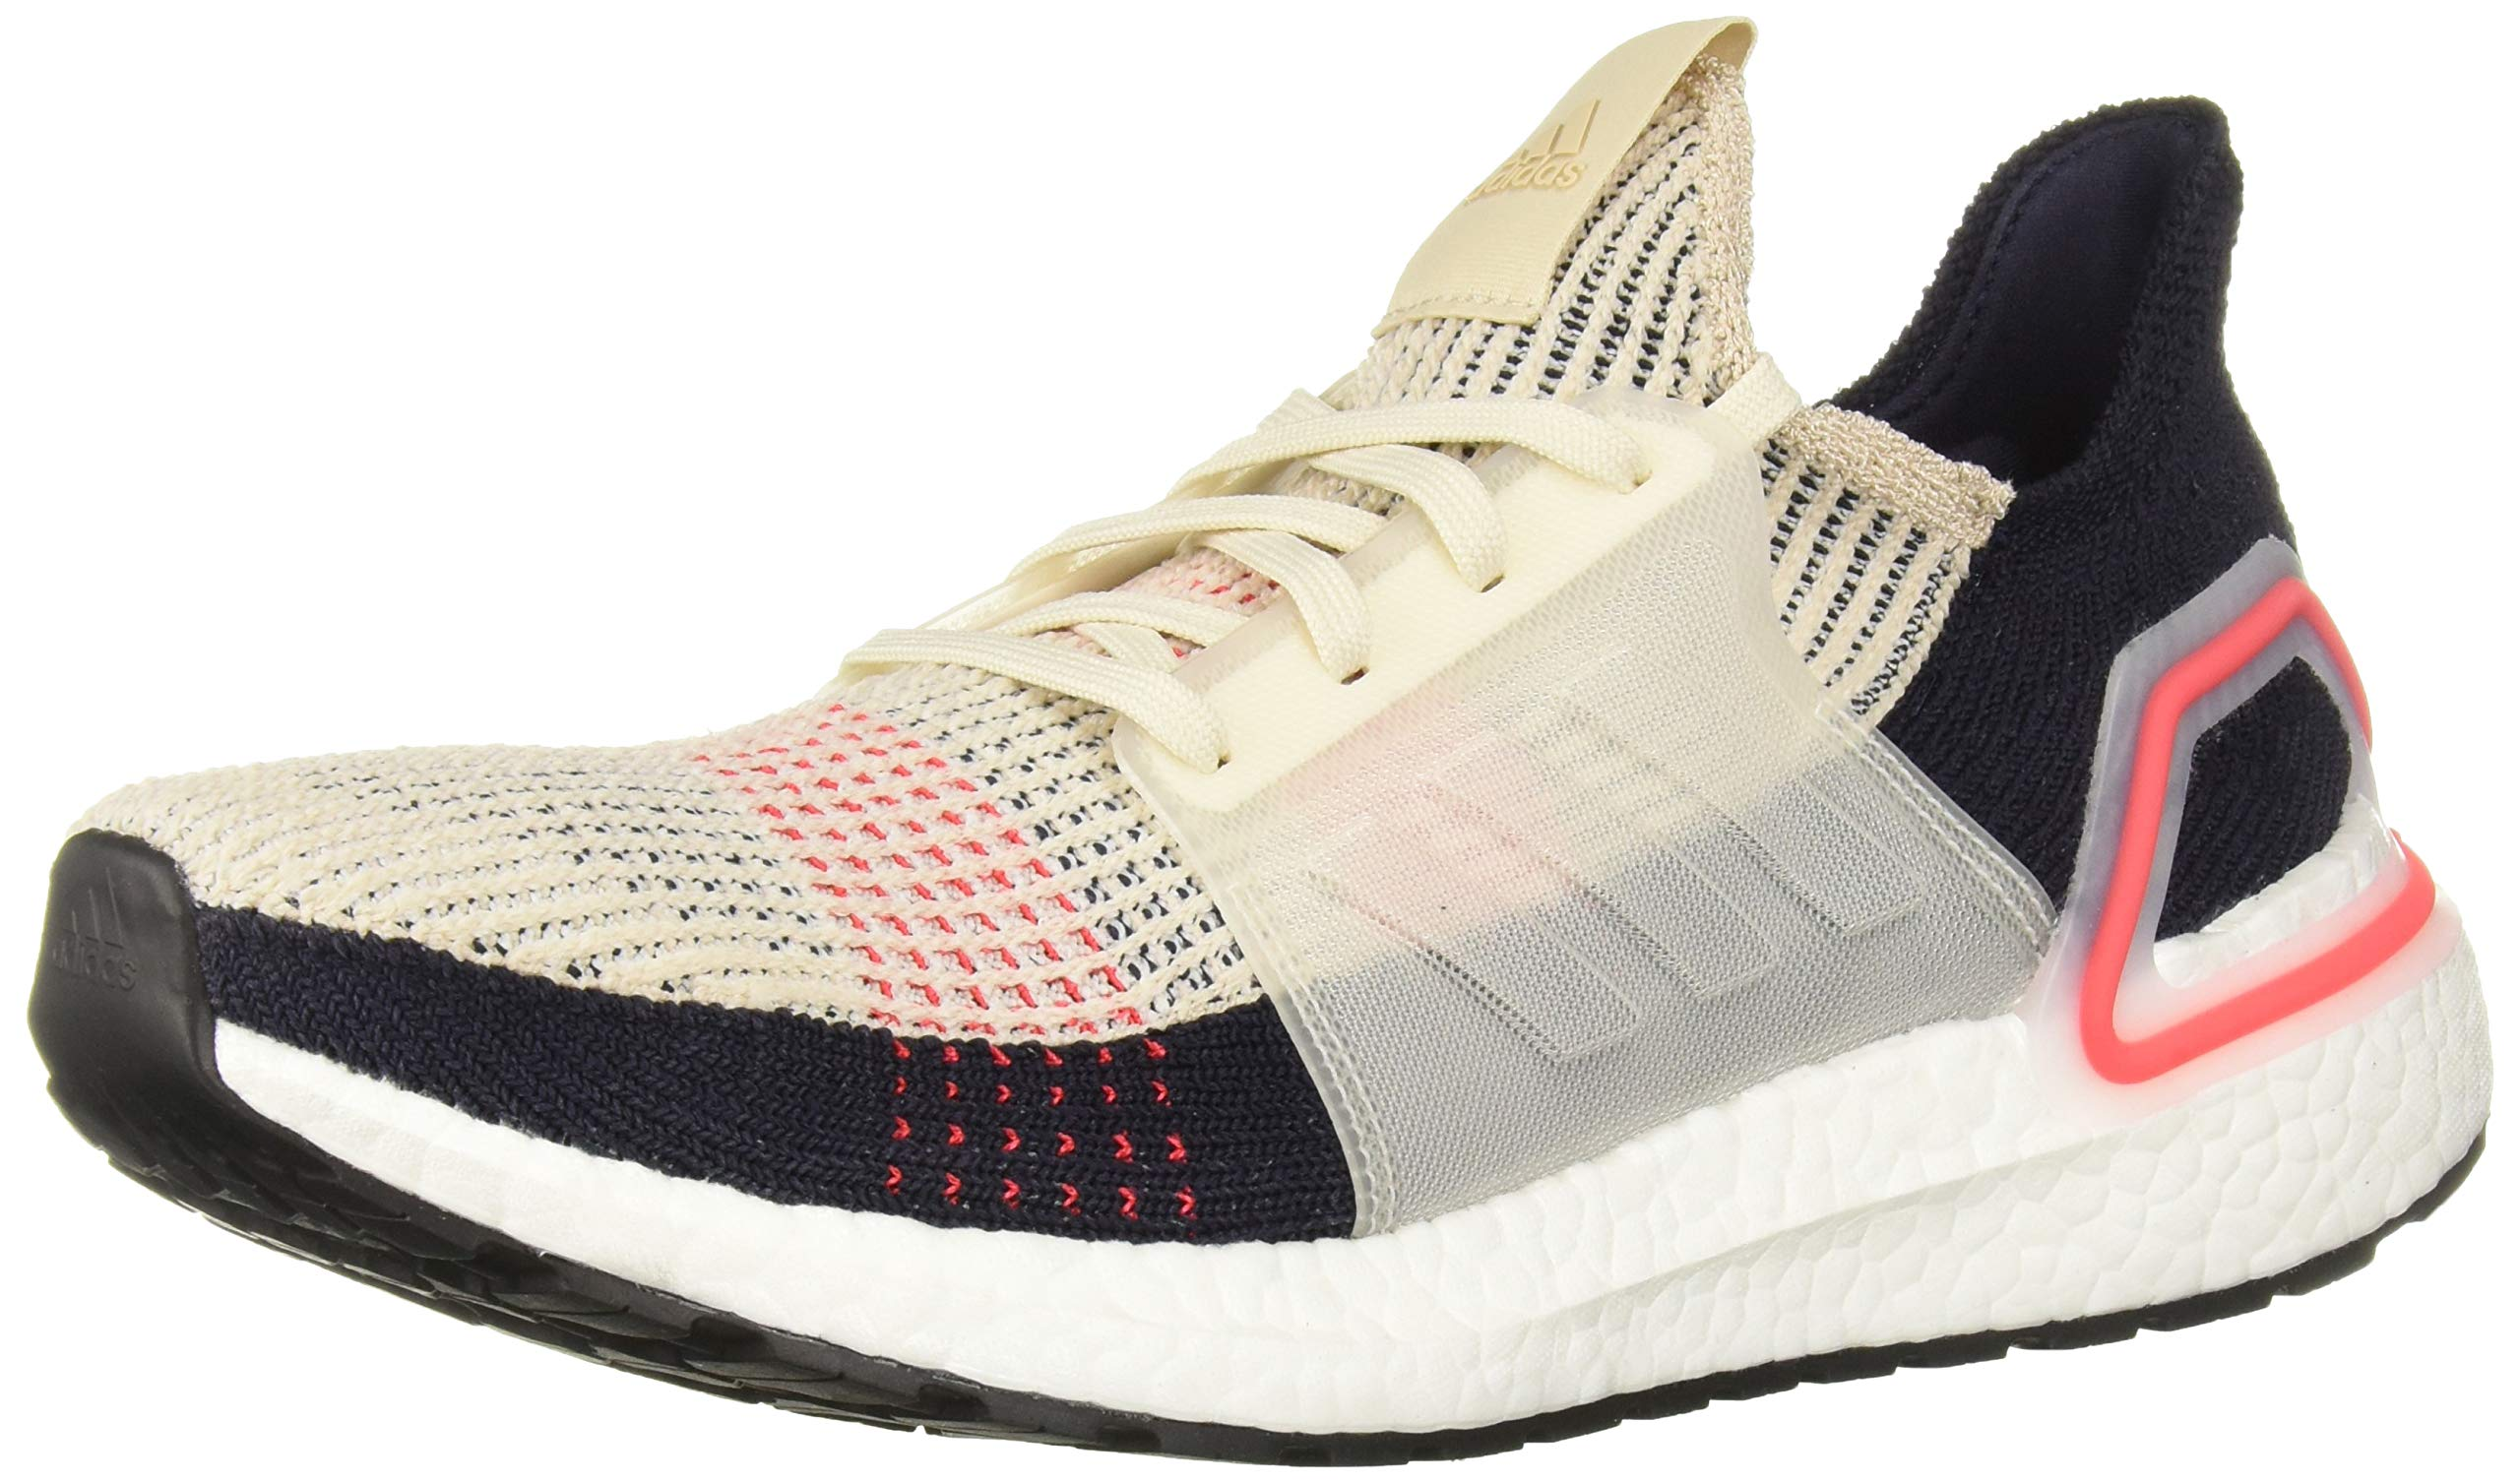 adidas Women's Ultraboost 19, Clear Brown/White/Legend Ink, 5.5 M US by adidas